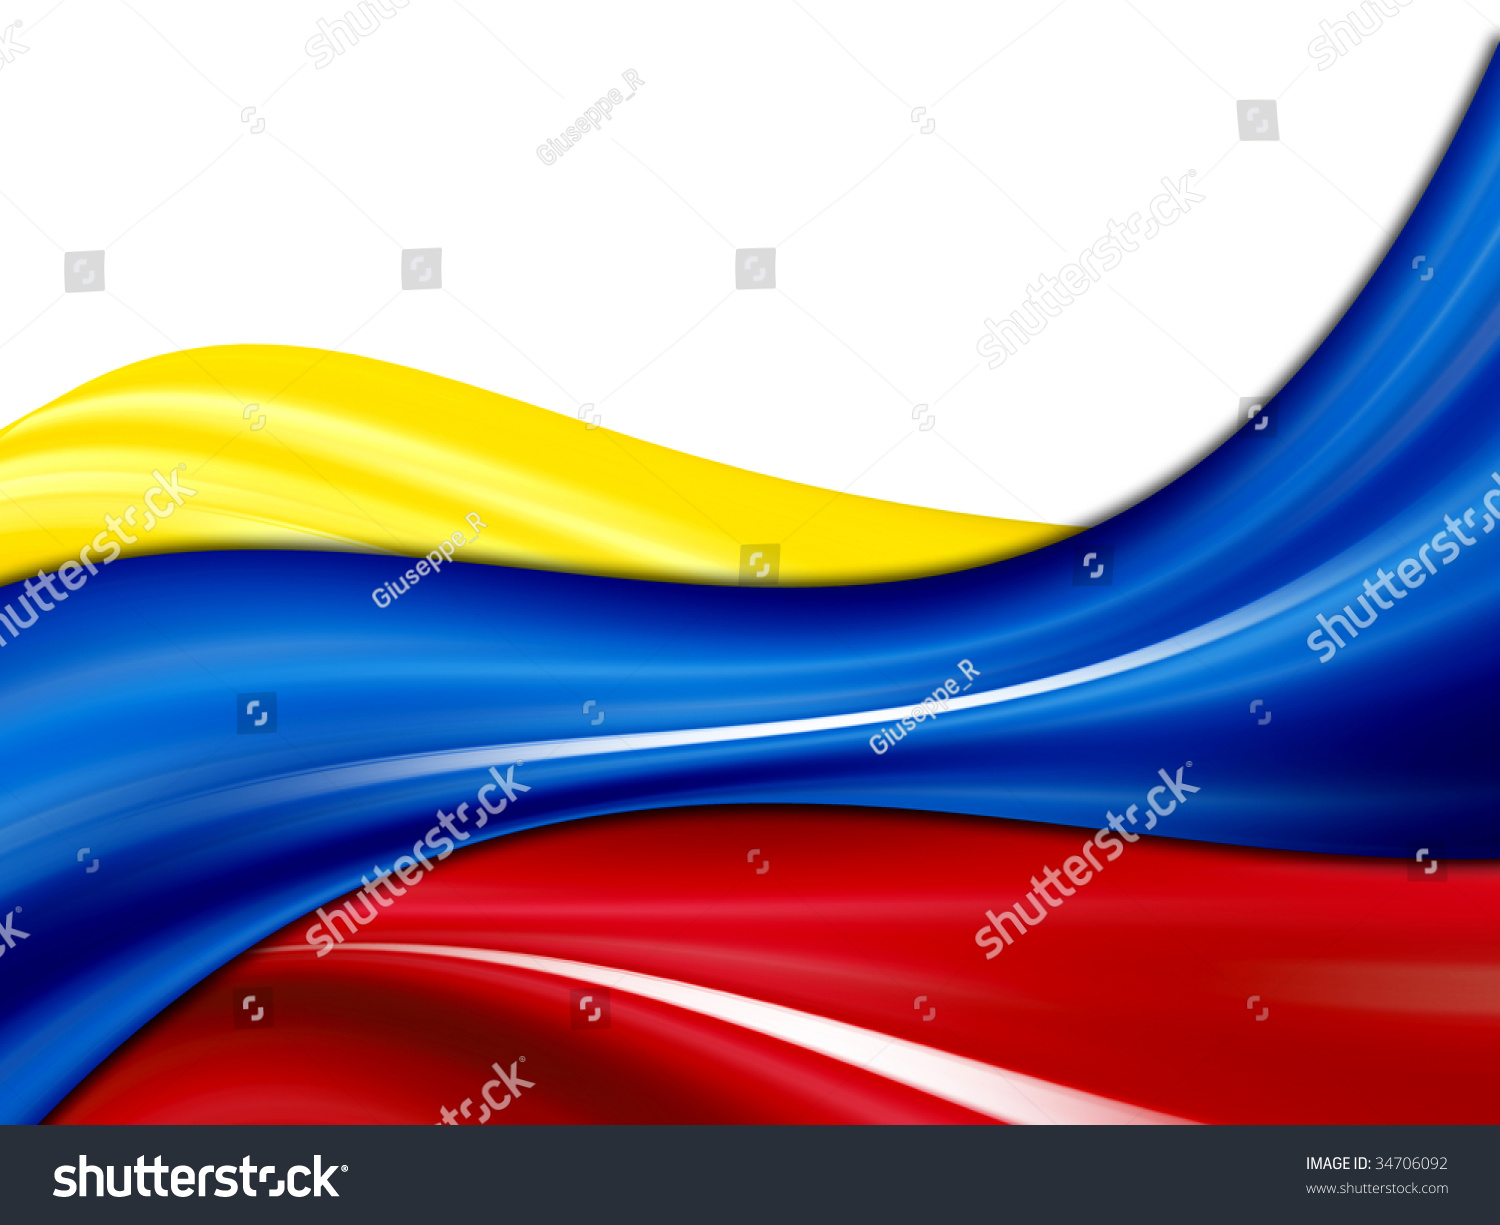 colombia waves flag yellow blue red stock illustration 34706092 shutterstock. Black Bedroom Furniture Sets. Home Design Ideas